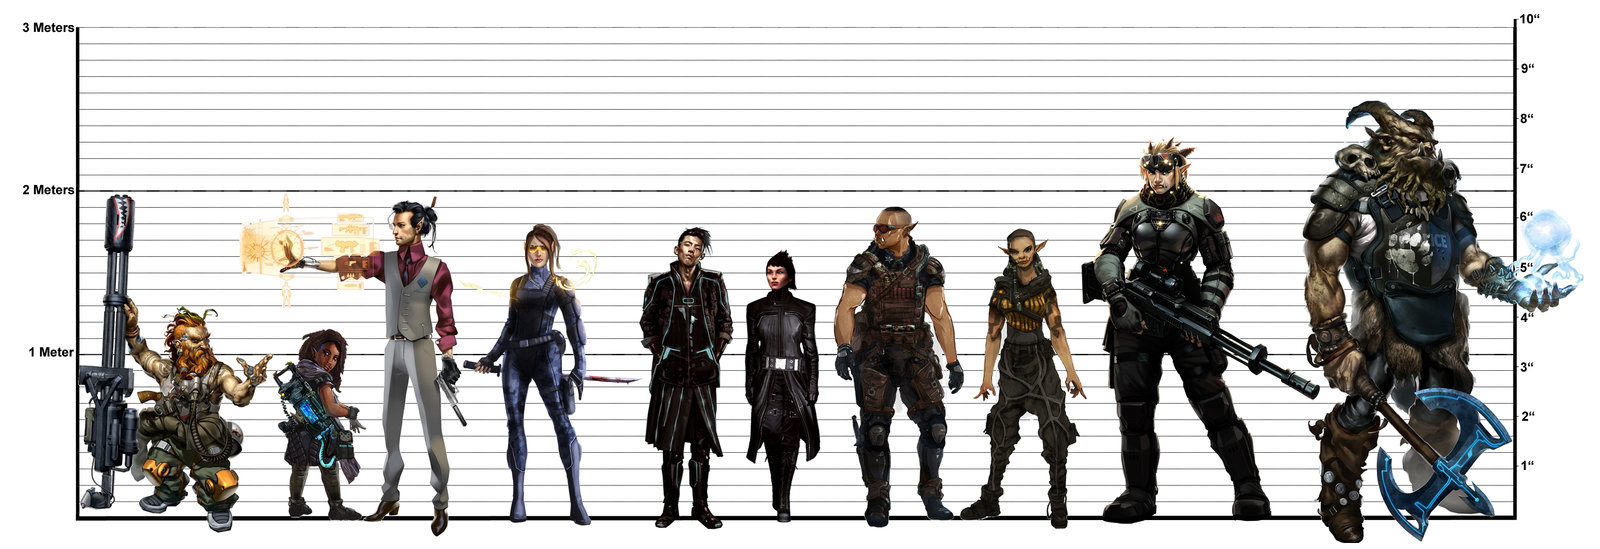 Shadowrun races comparison chart by dirkloechel d8eqwrz